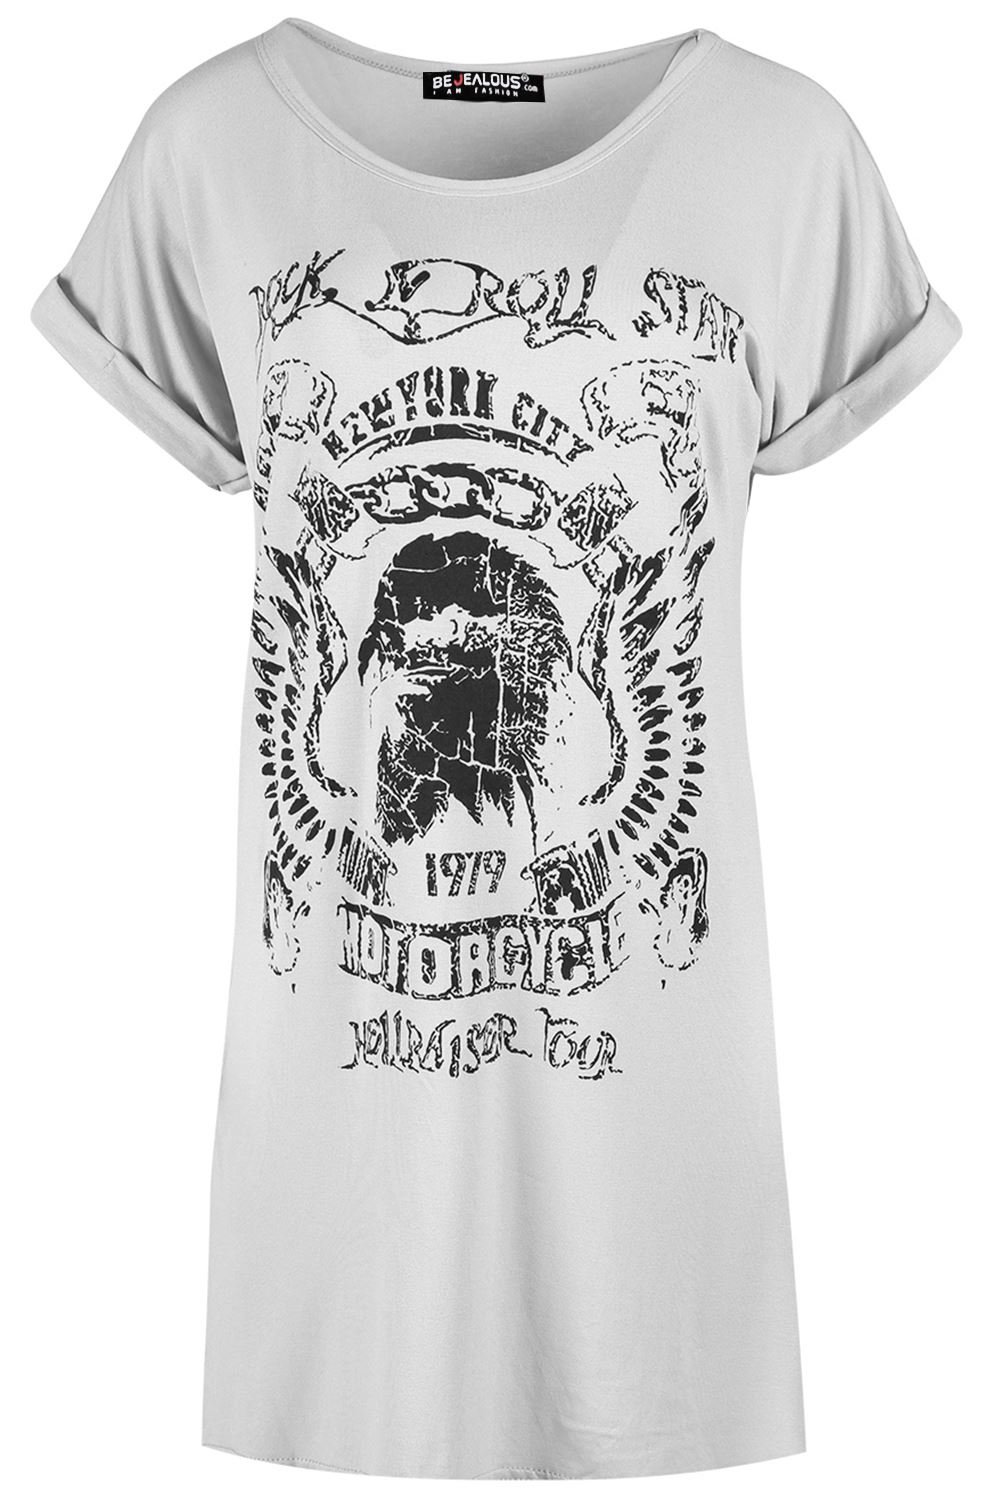 Womens Rock And Roll Star America Oversize Turn Up Sleeve